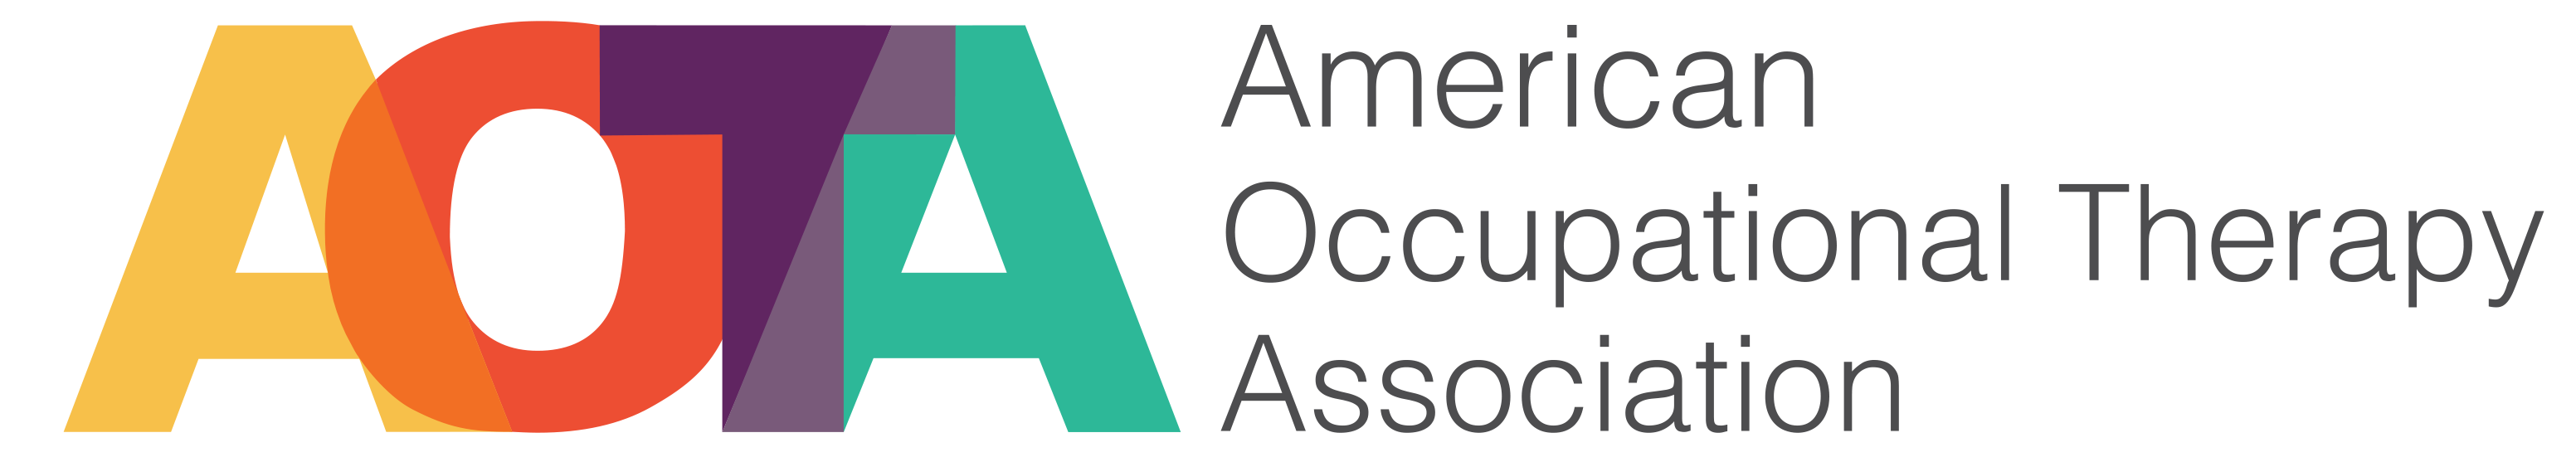 American Occupational Therapy Association | Choosing Wisely